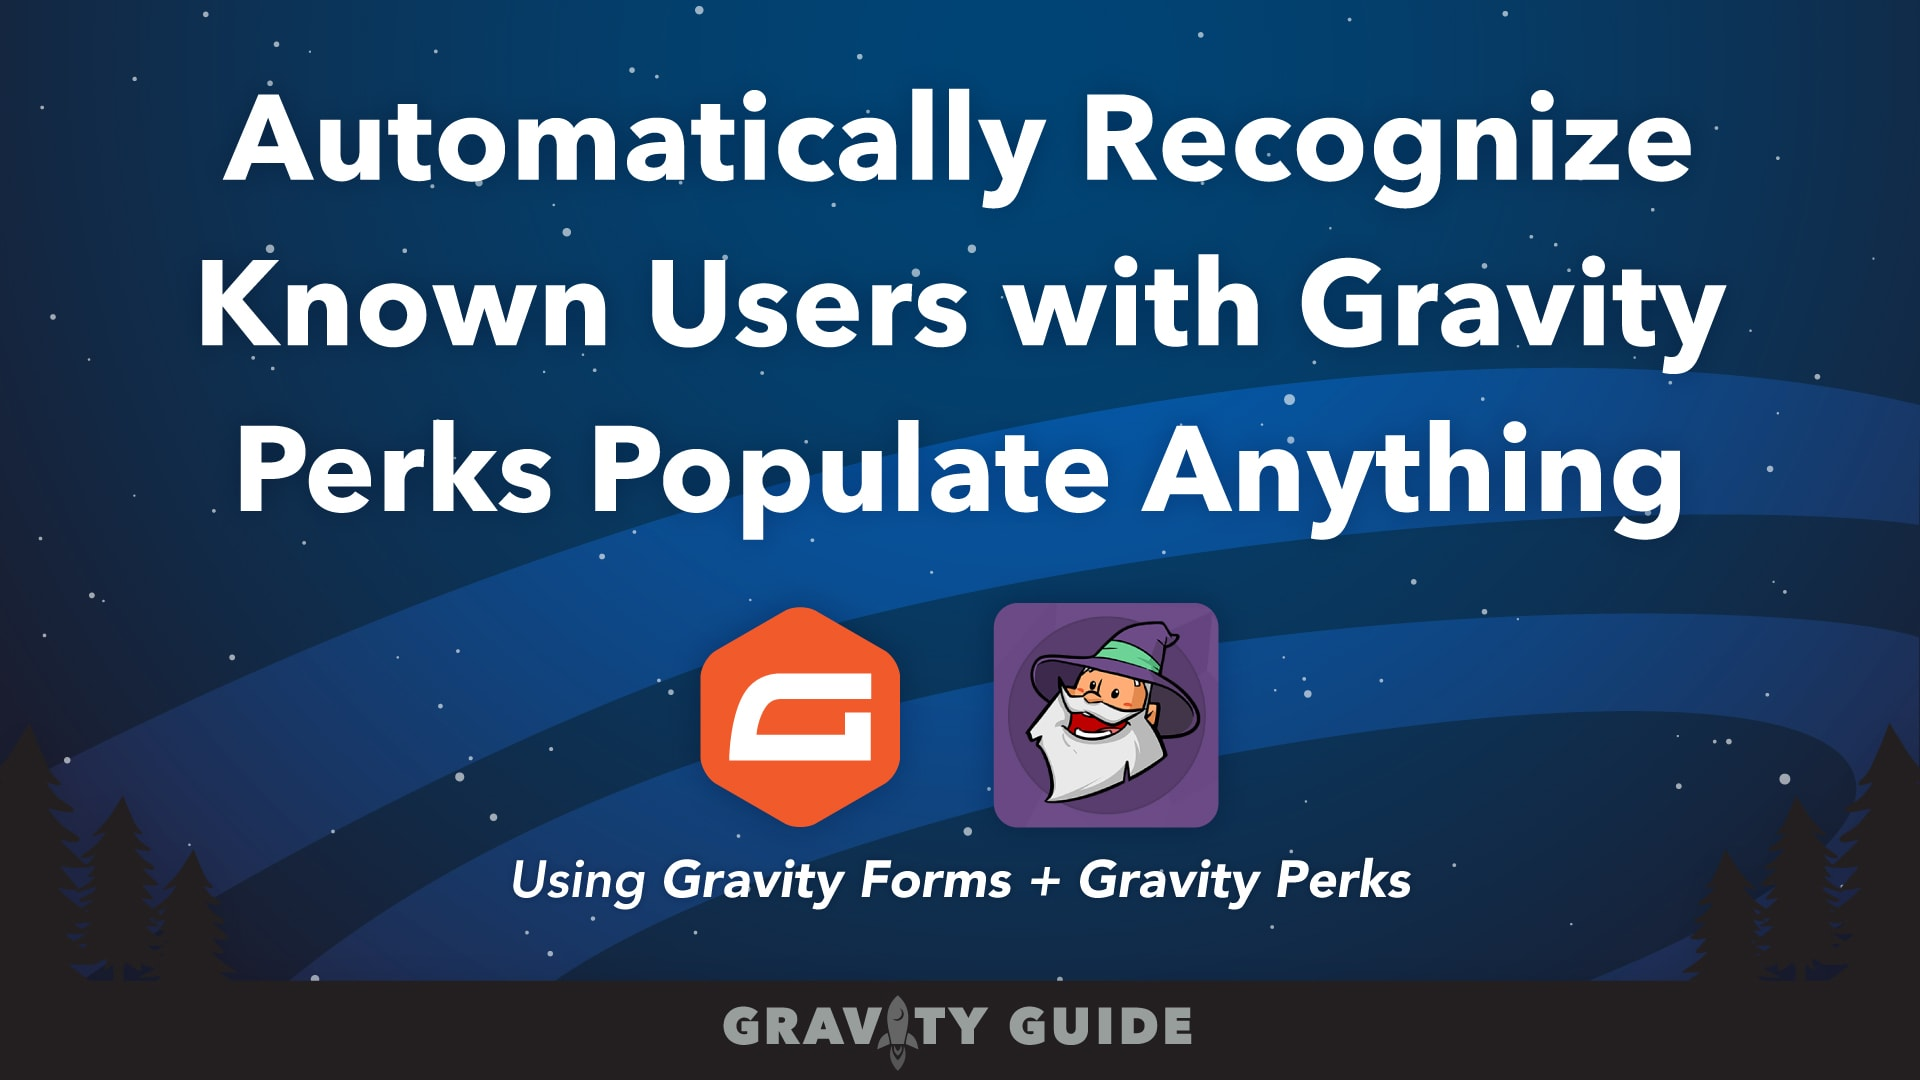 Automatically Recognize Known Users with Gravity Perks Populate Anything